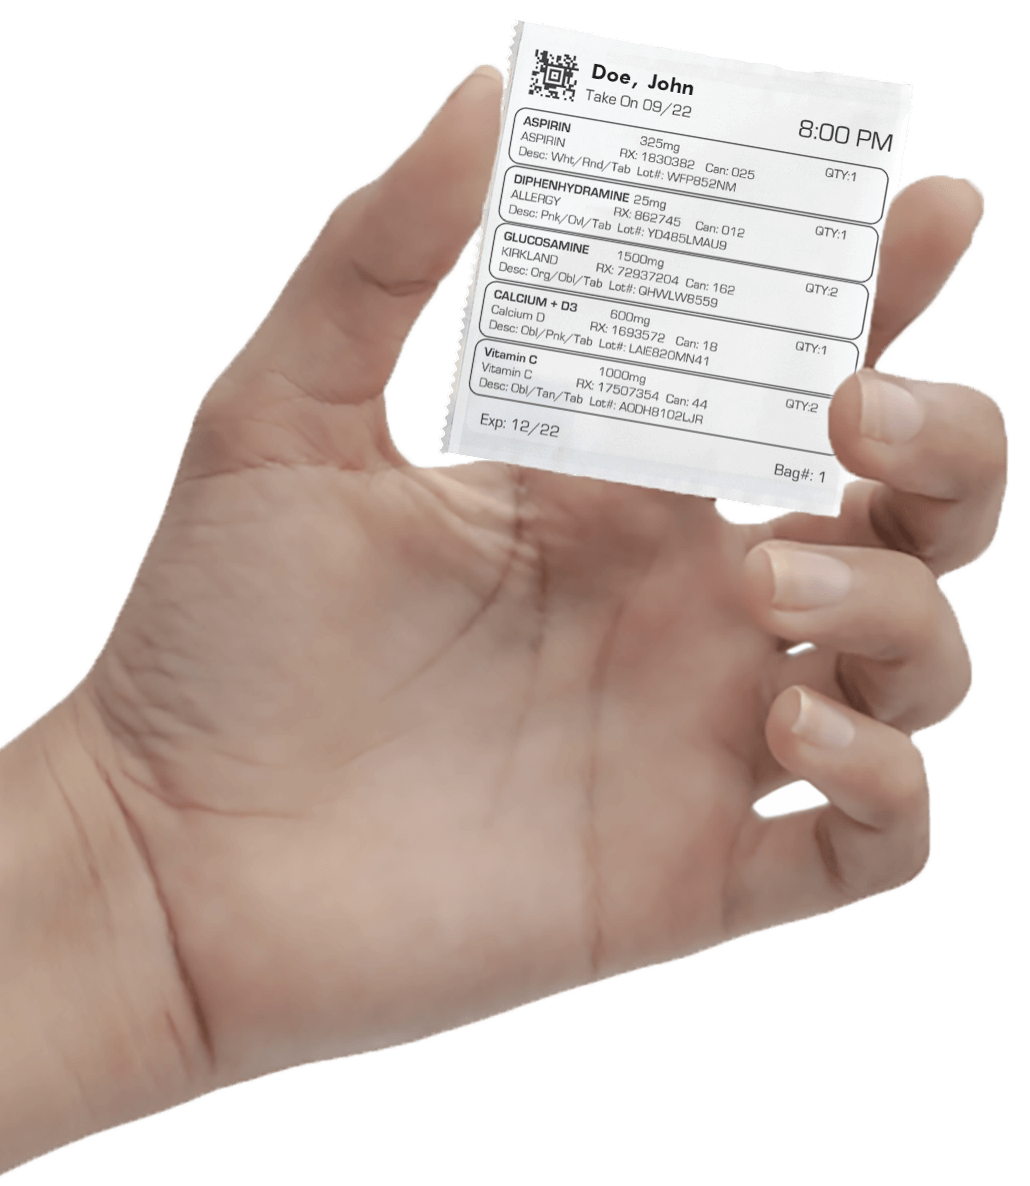 Hand holding a personalized  medication pack called SyncRx from Gibson Pharmacy